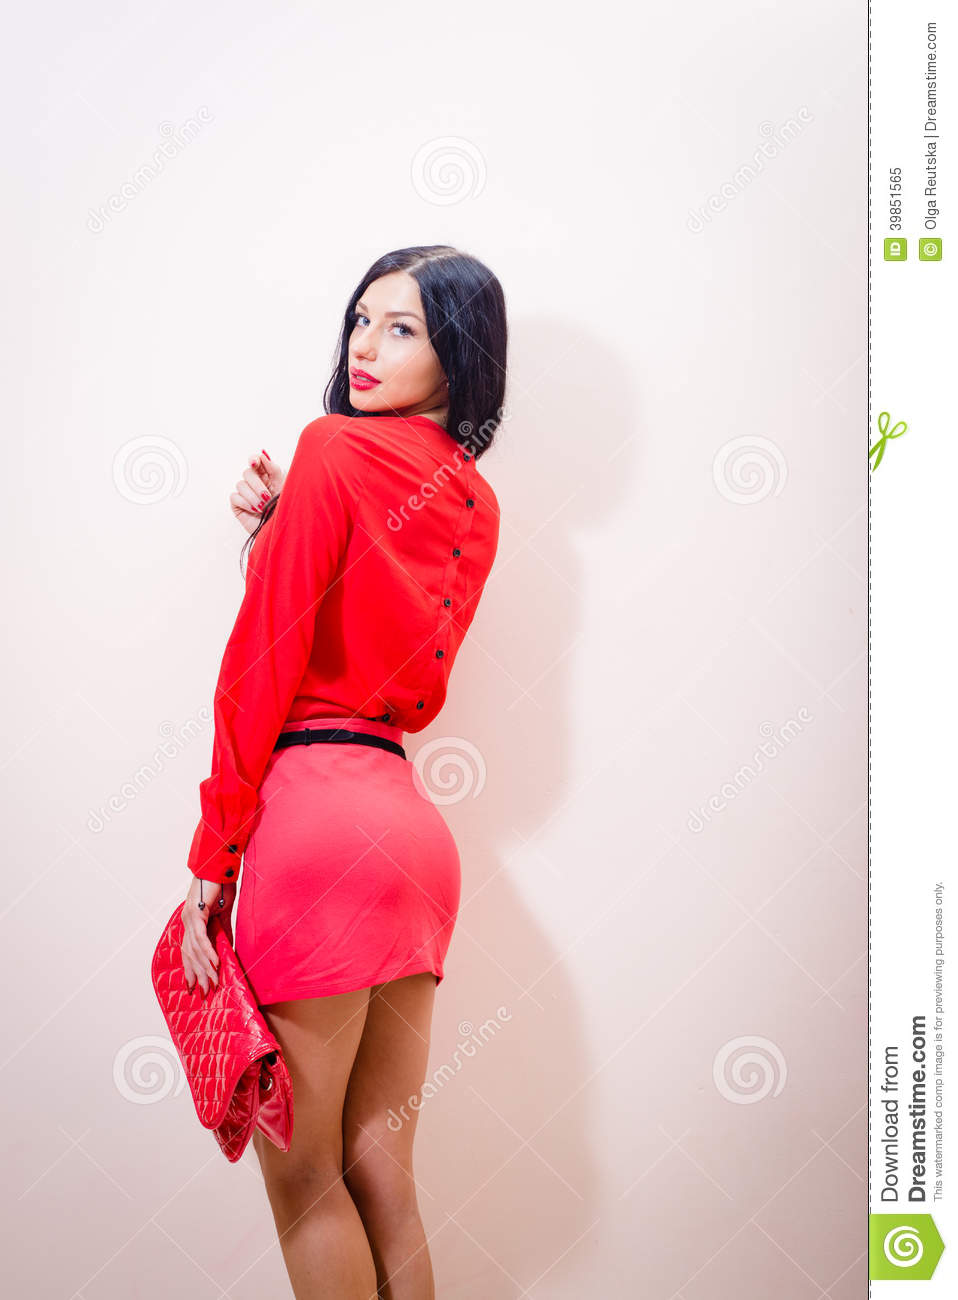 young beautiful woman in red dress male models picture